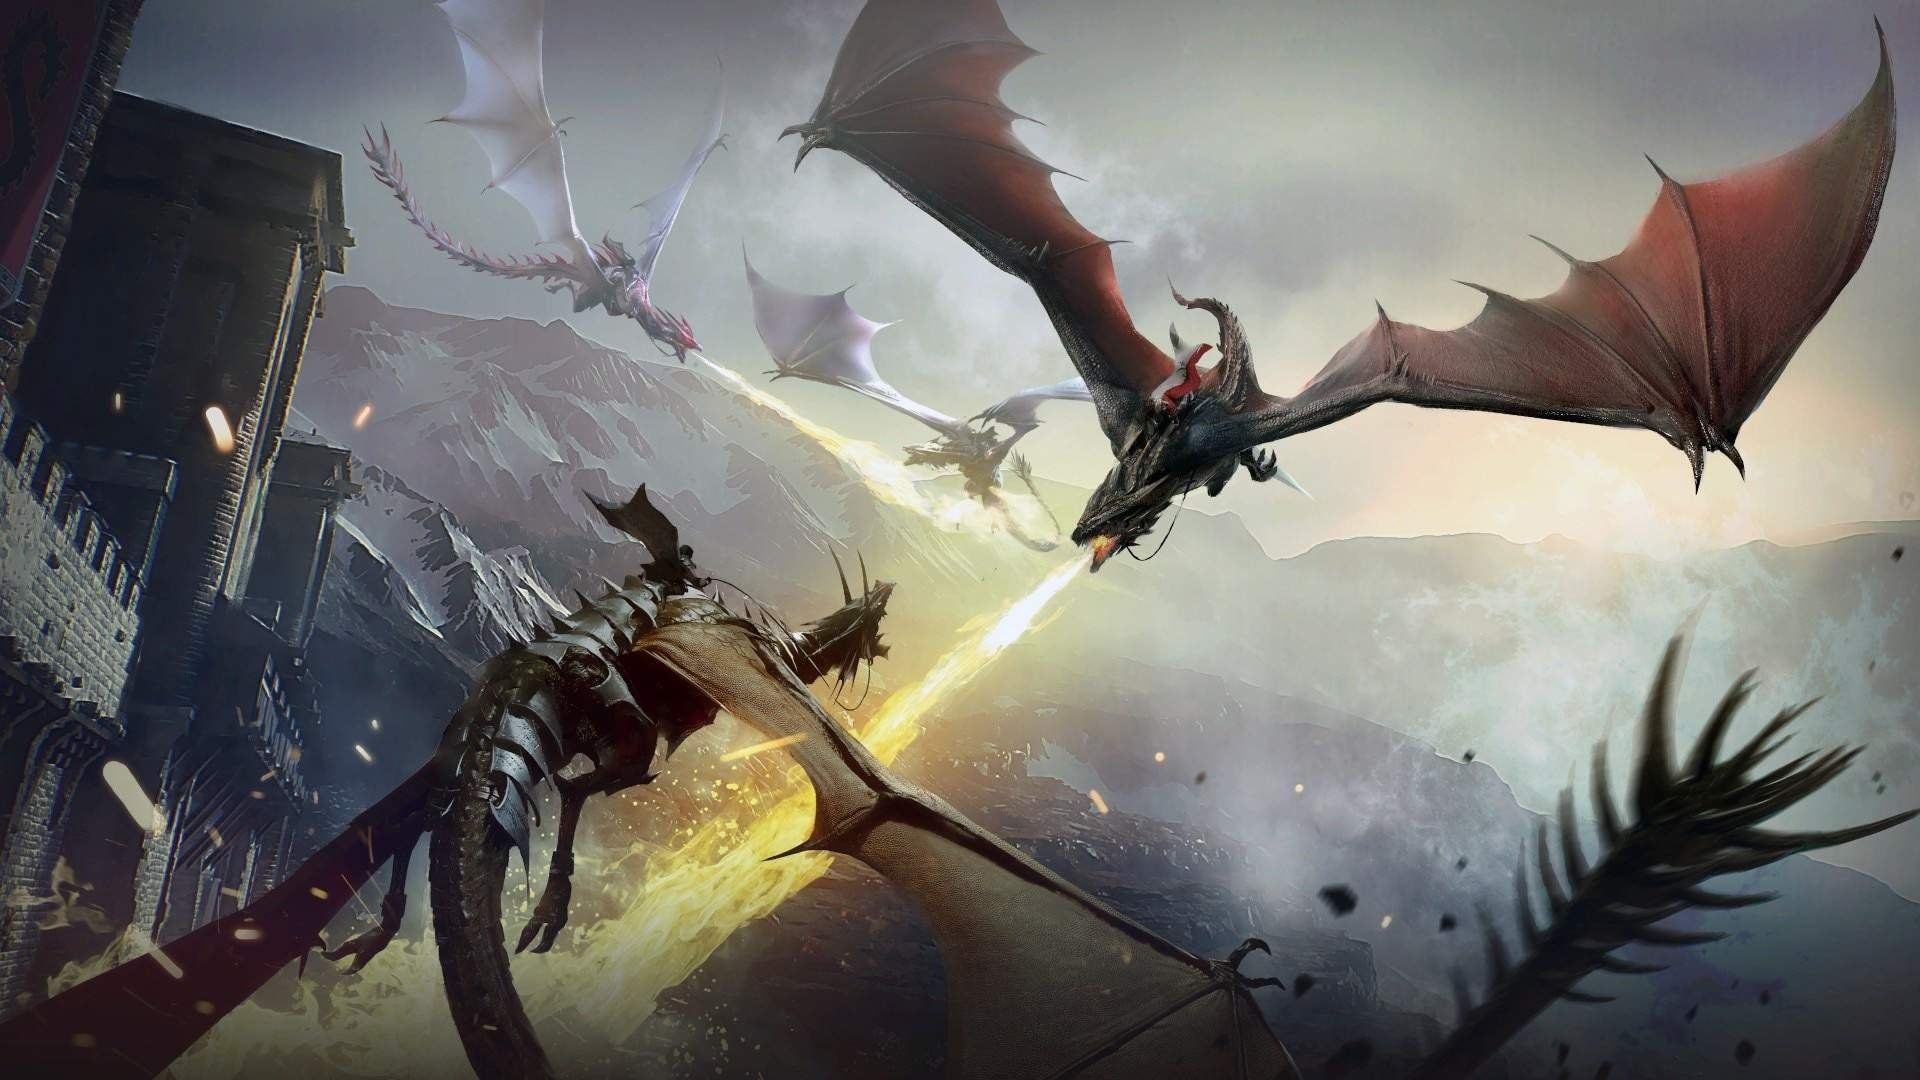 Century Age Of Ashes Useful Tips For Playtest In 2021 Game Guide Century Age